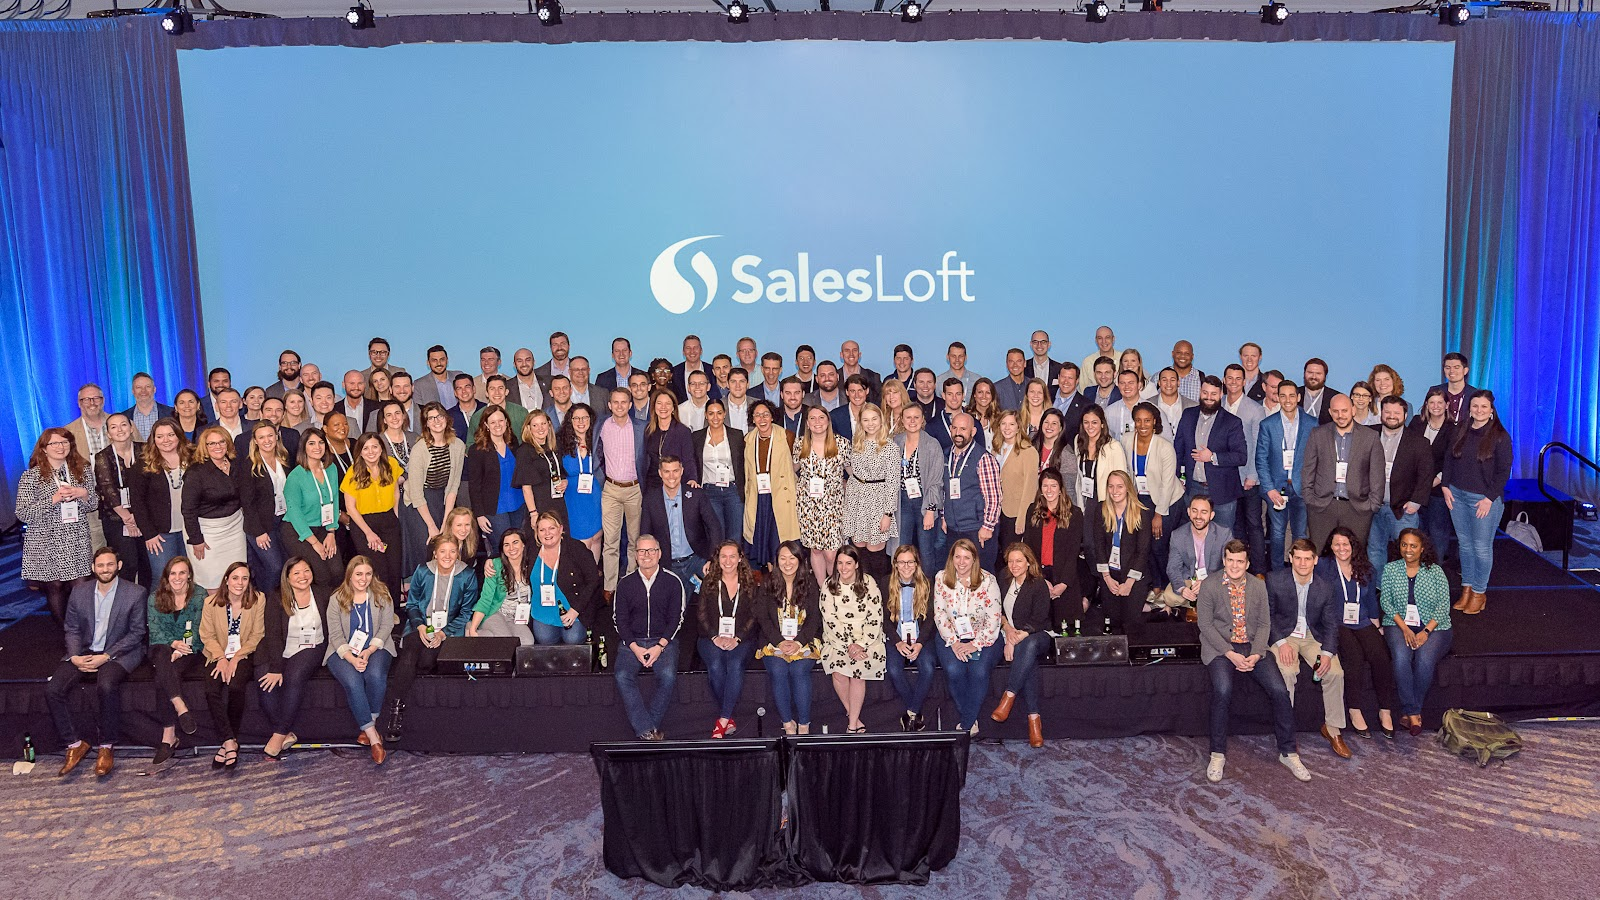 SalesLoft team gathering in a corporate event